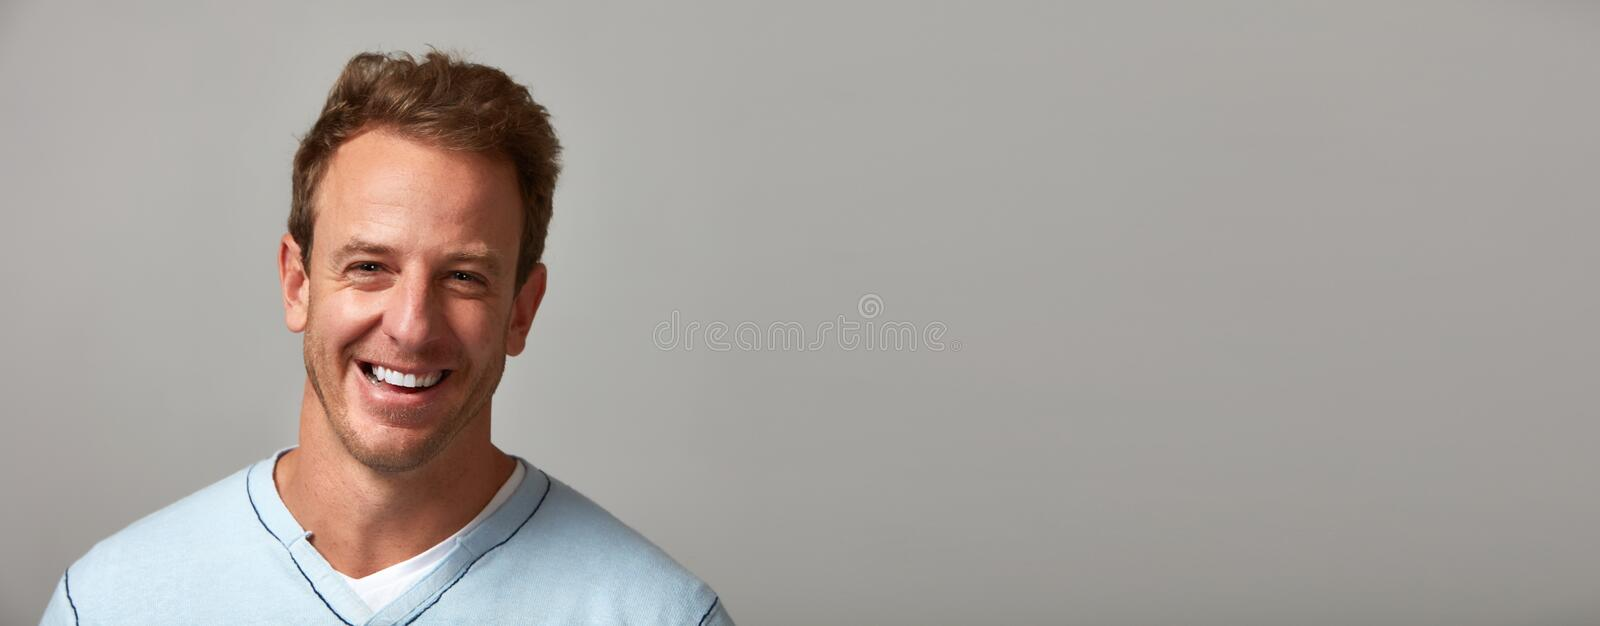 Download Smiling man. stock photo. Image of expressions, happy - 80982830